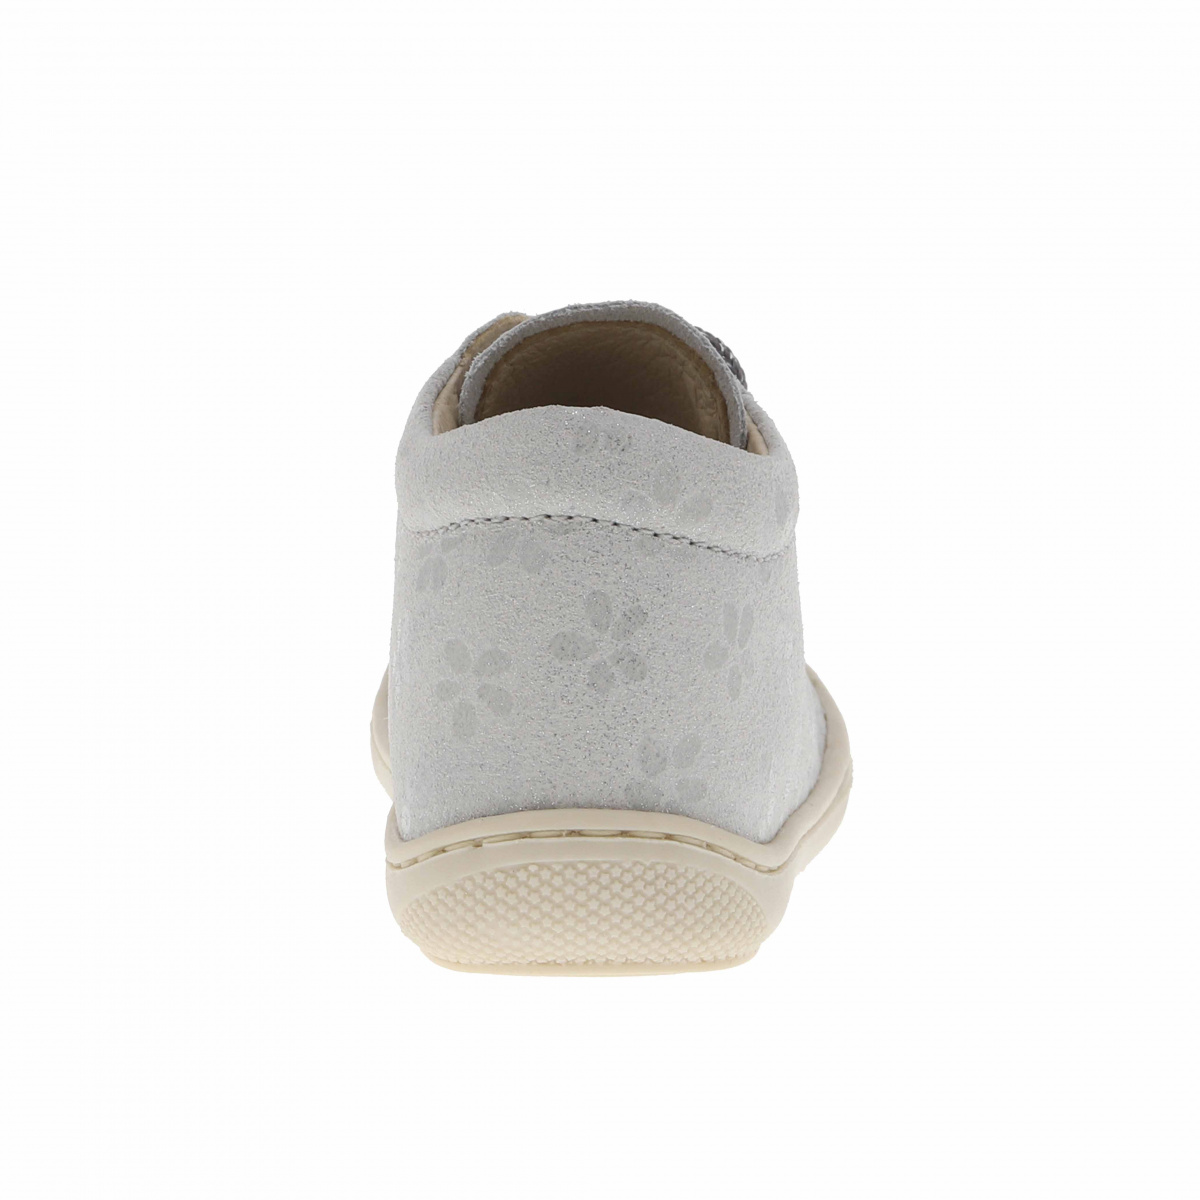 Bottillons cuir fille COCOON NATURINO